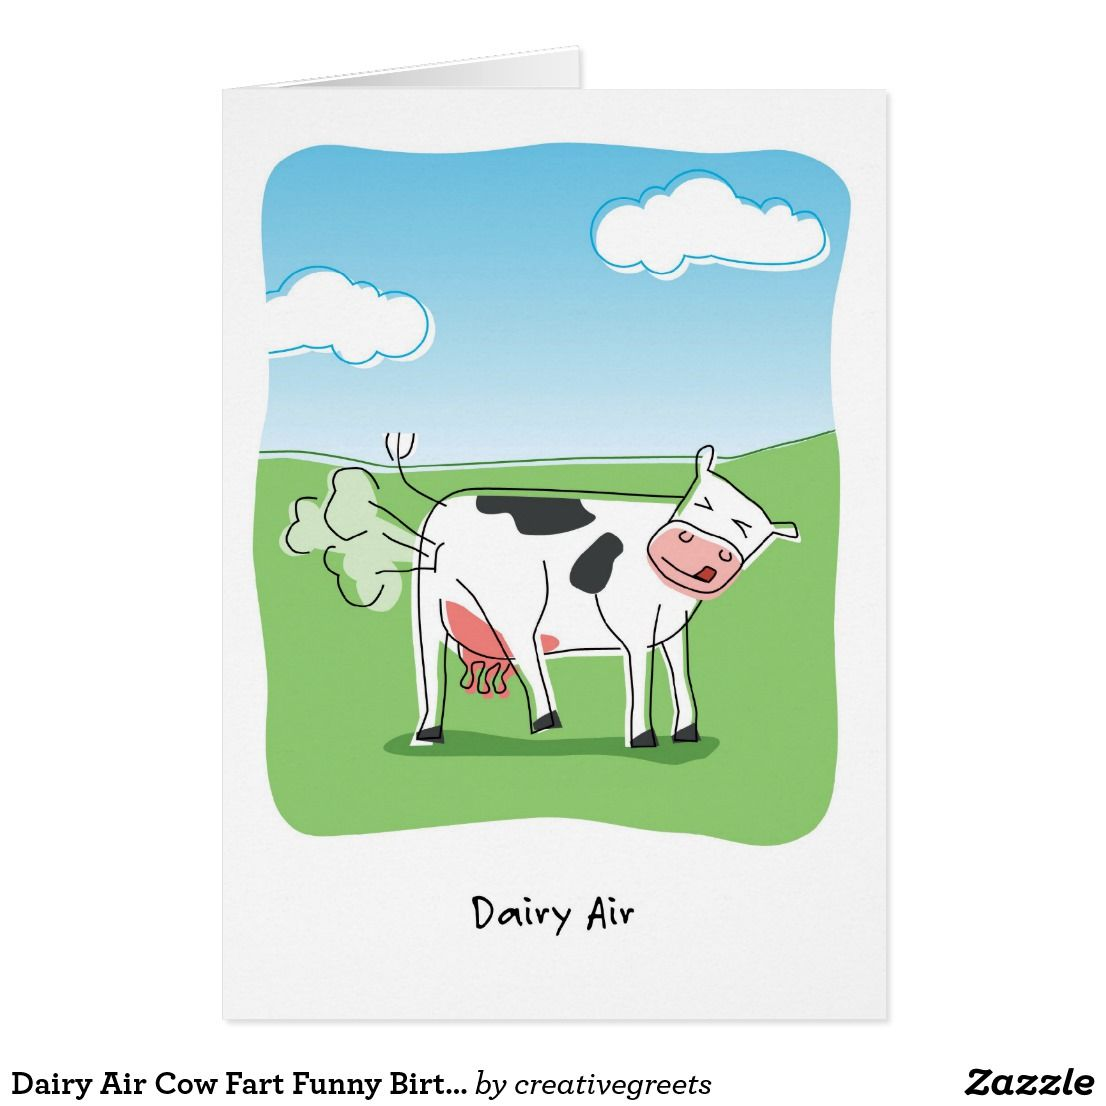 Dairy Air Cow Fart Funny Birthday Card Funny Birthday Dairy And Cow